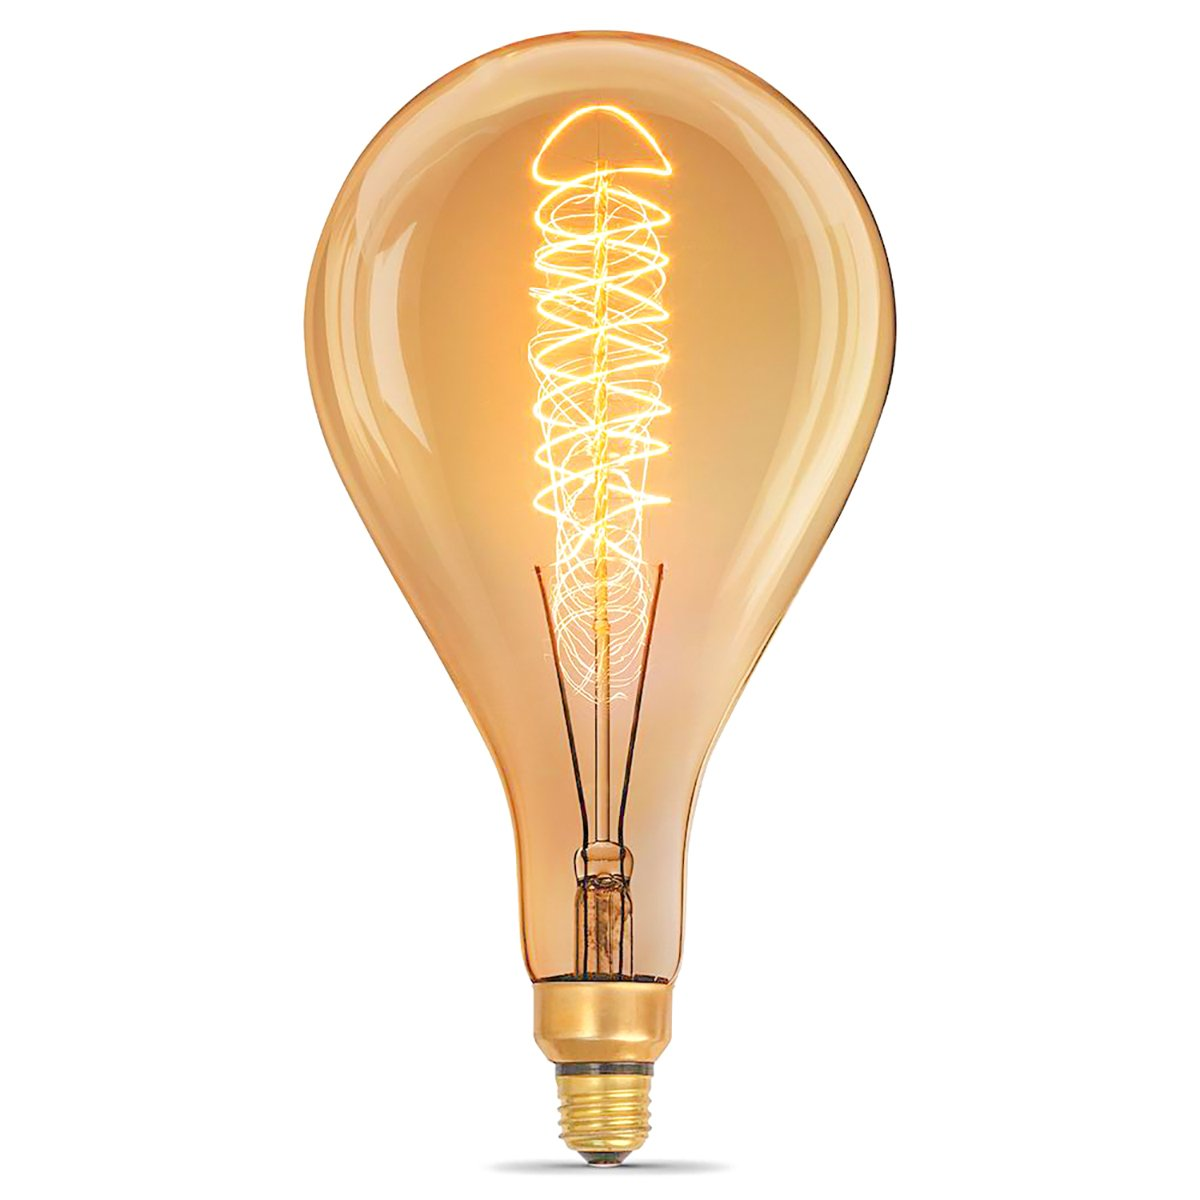 Jslinter Oversized Edison Bulb, Spiral Filament Vintage Decorative Pear Light Bulbs, PS52 Dimmable with E26 Base